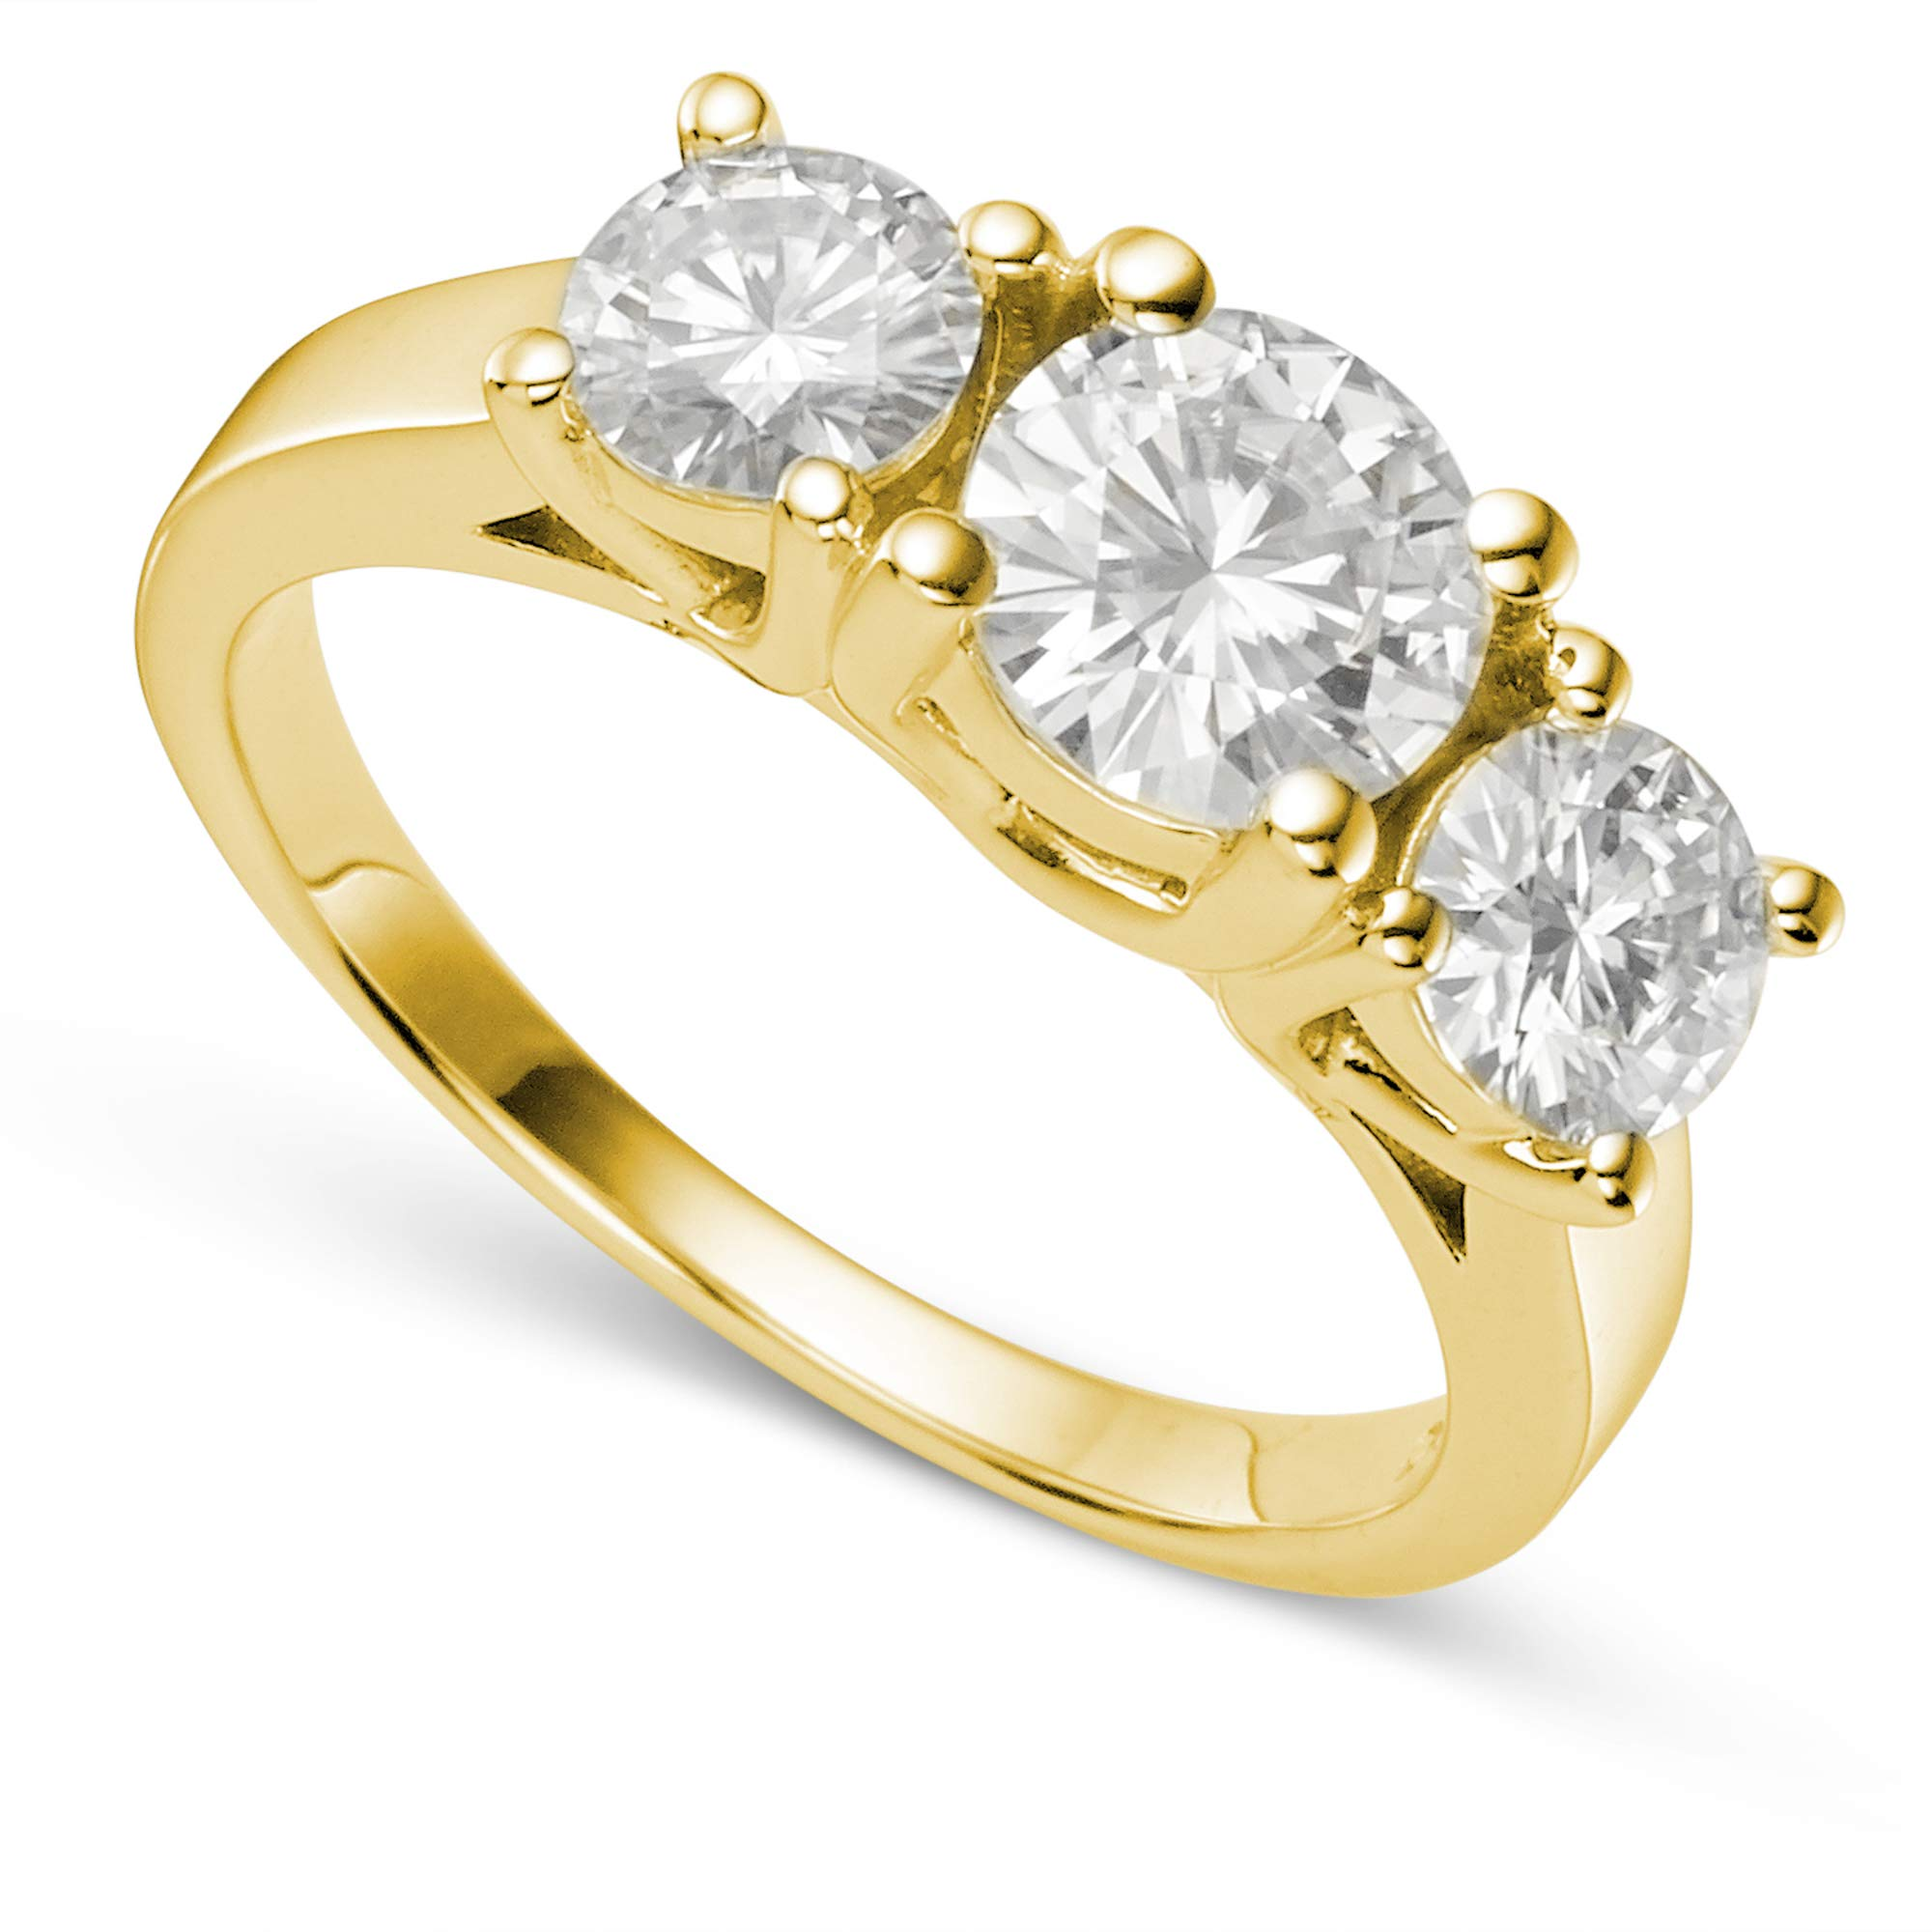 14K Yellow Gold Moissanite by Charles & Colvard Round Three Stone Ring-size 7, 2.00cttw DEW